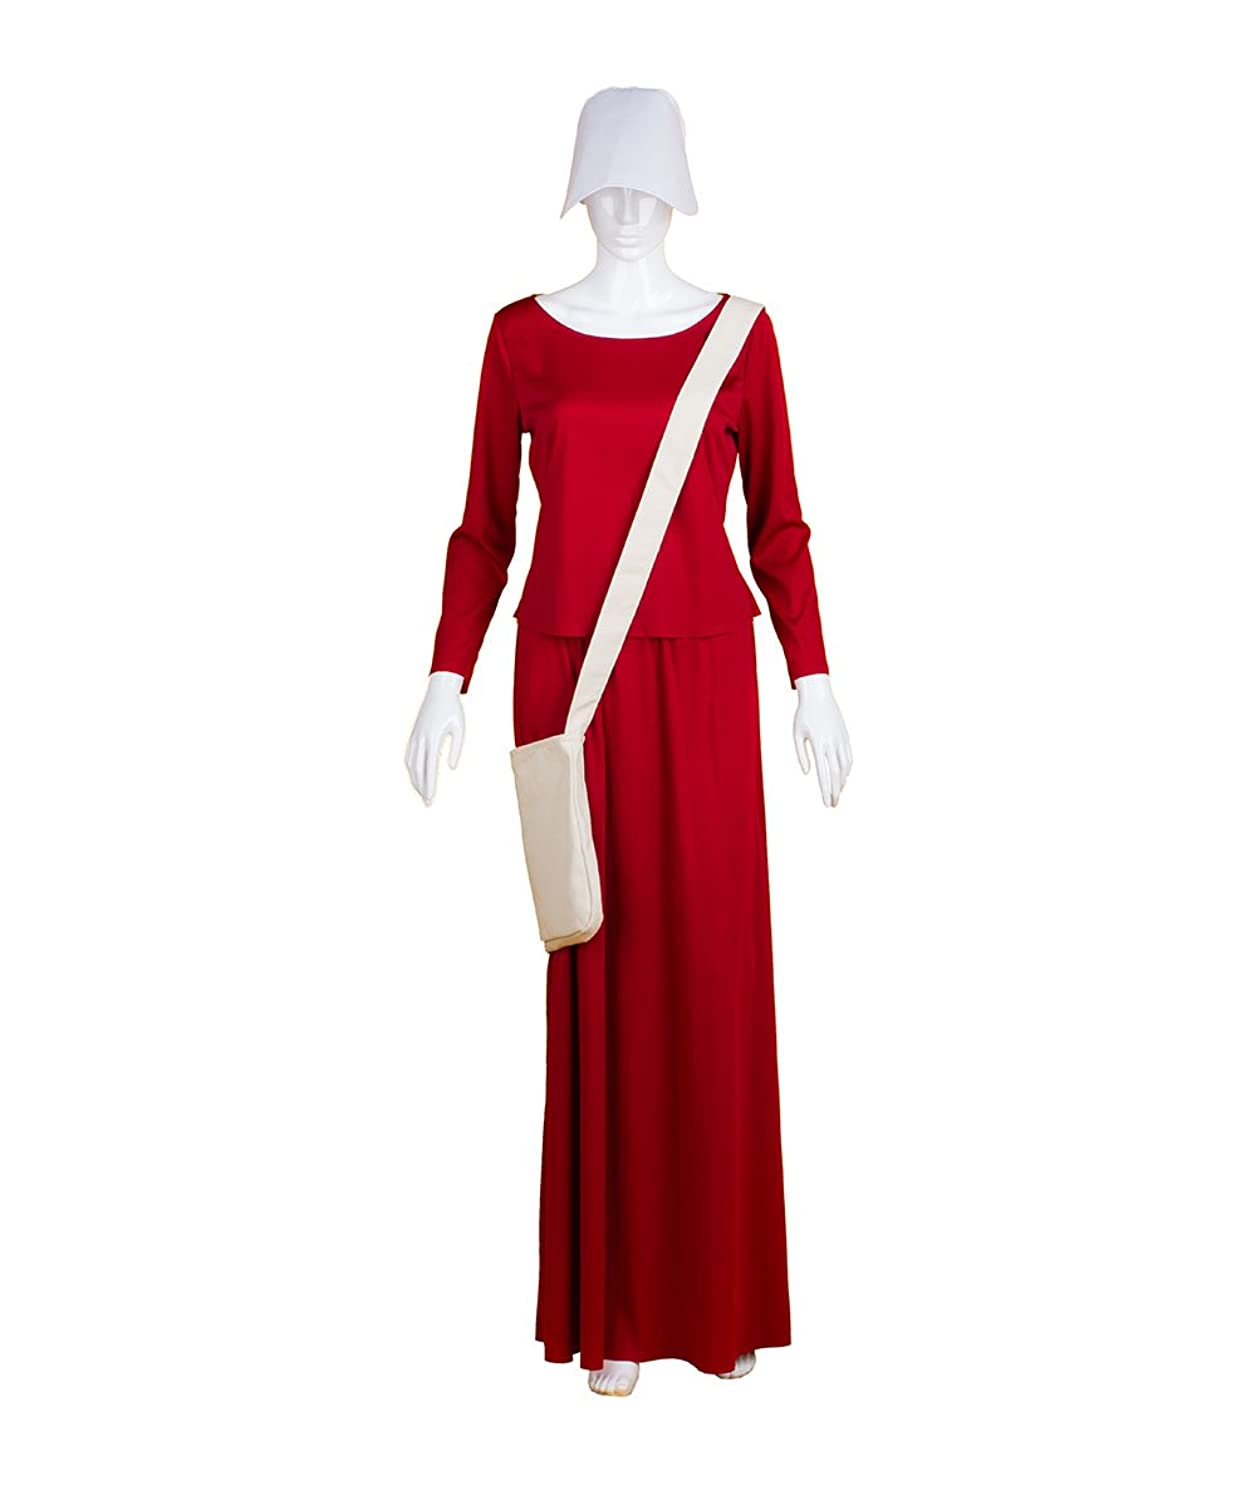 Halloween Party Online Adult Women's Dress handmaid Costume With Bag and Bonnet